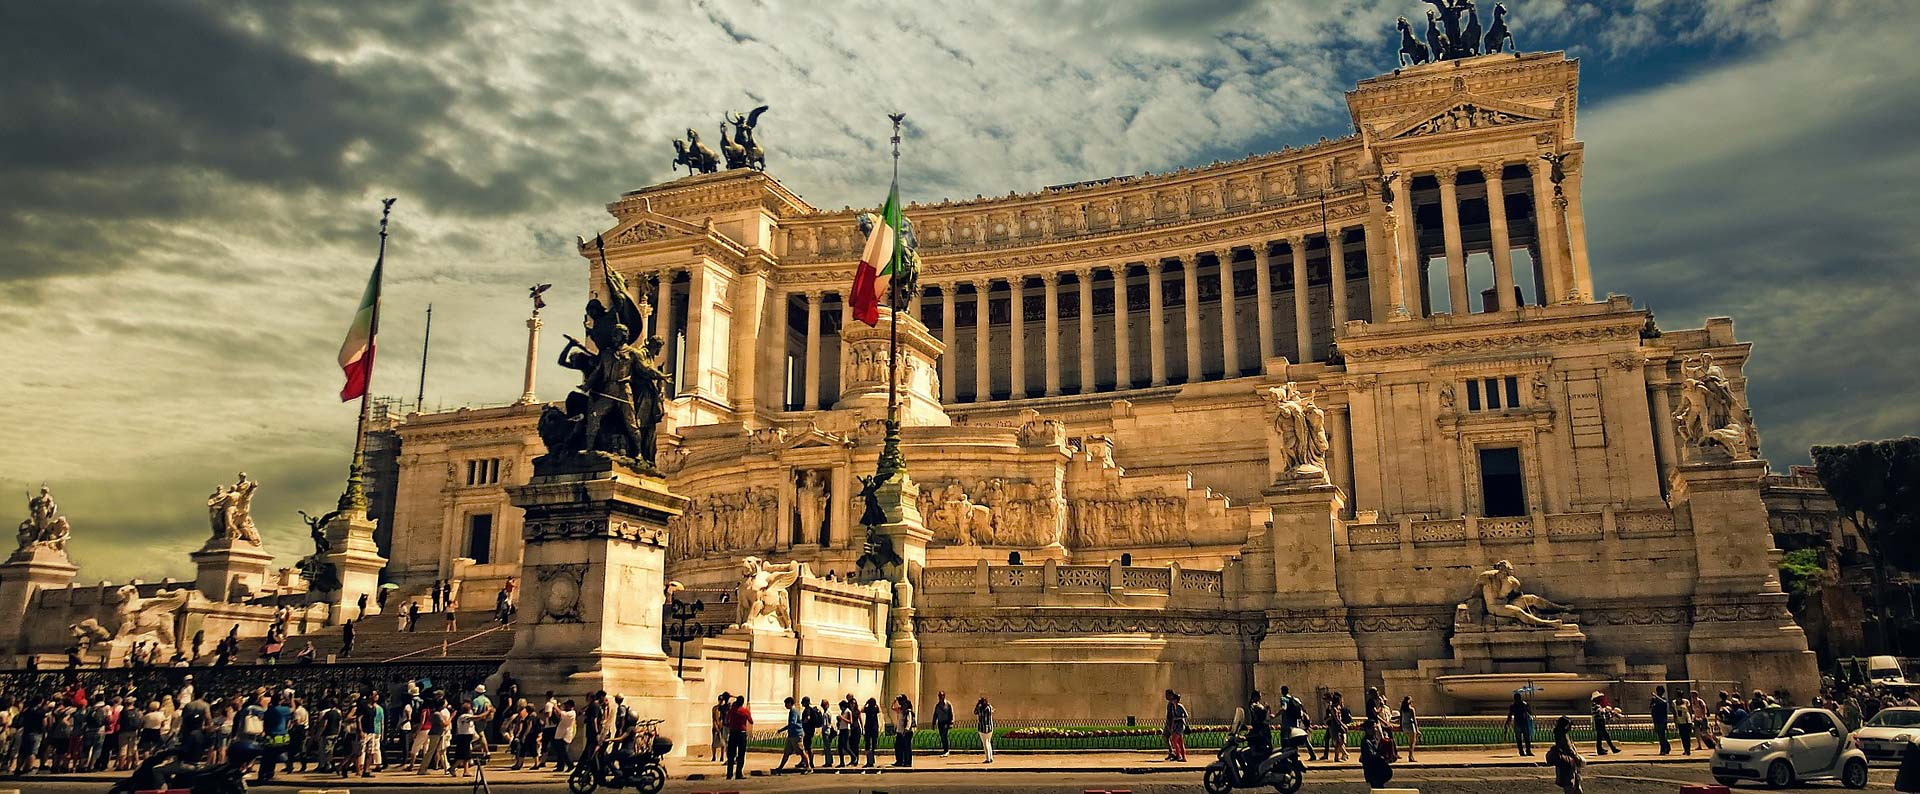 Discounted flight tickets from Hong Kong to Rome - IFlyFirstClass